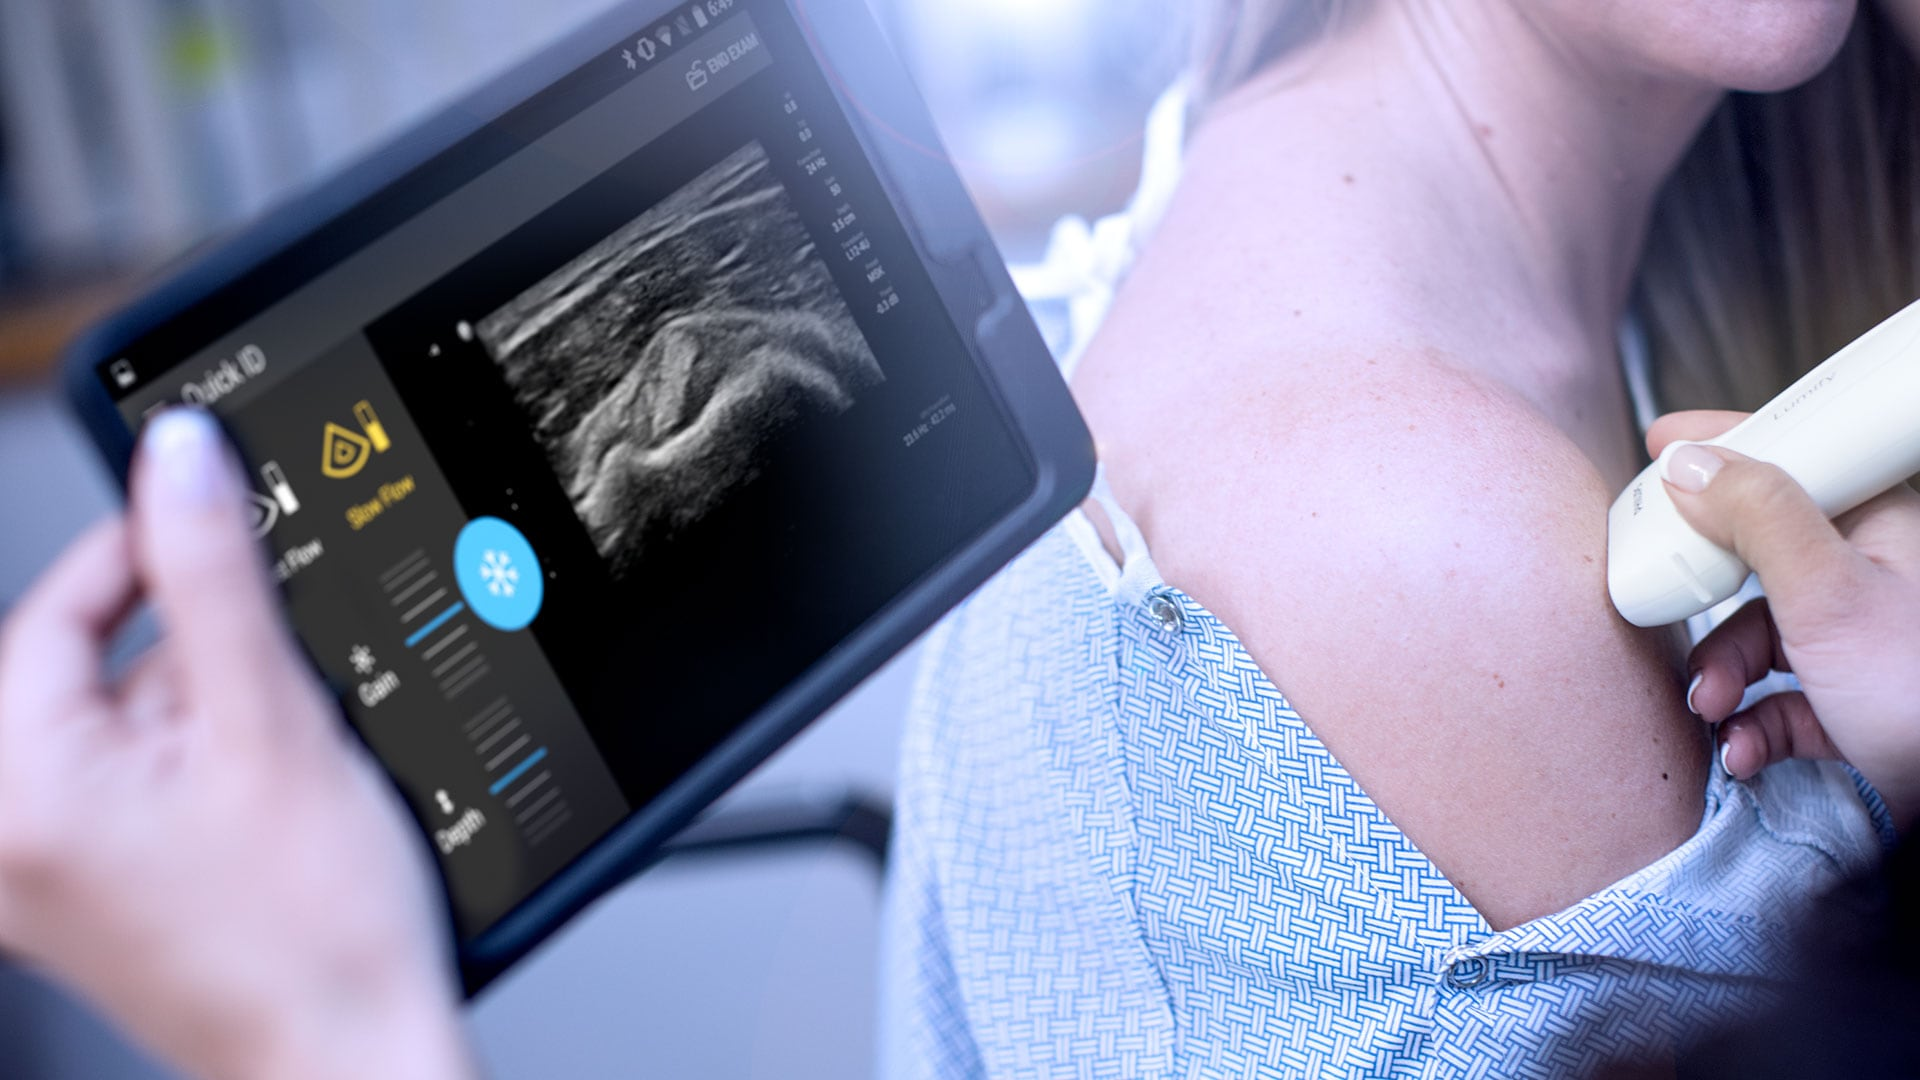 ultra-portable ultrasound scanners